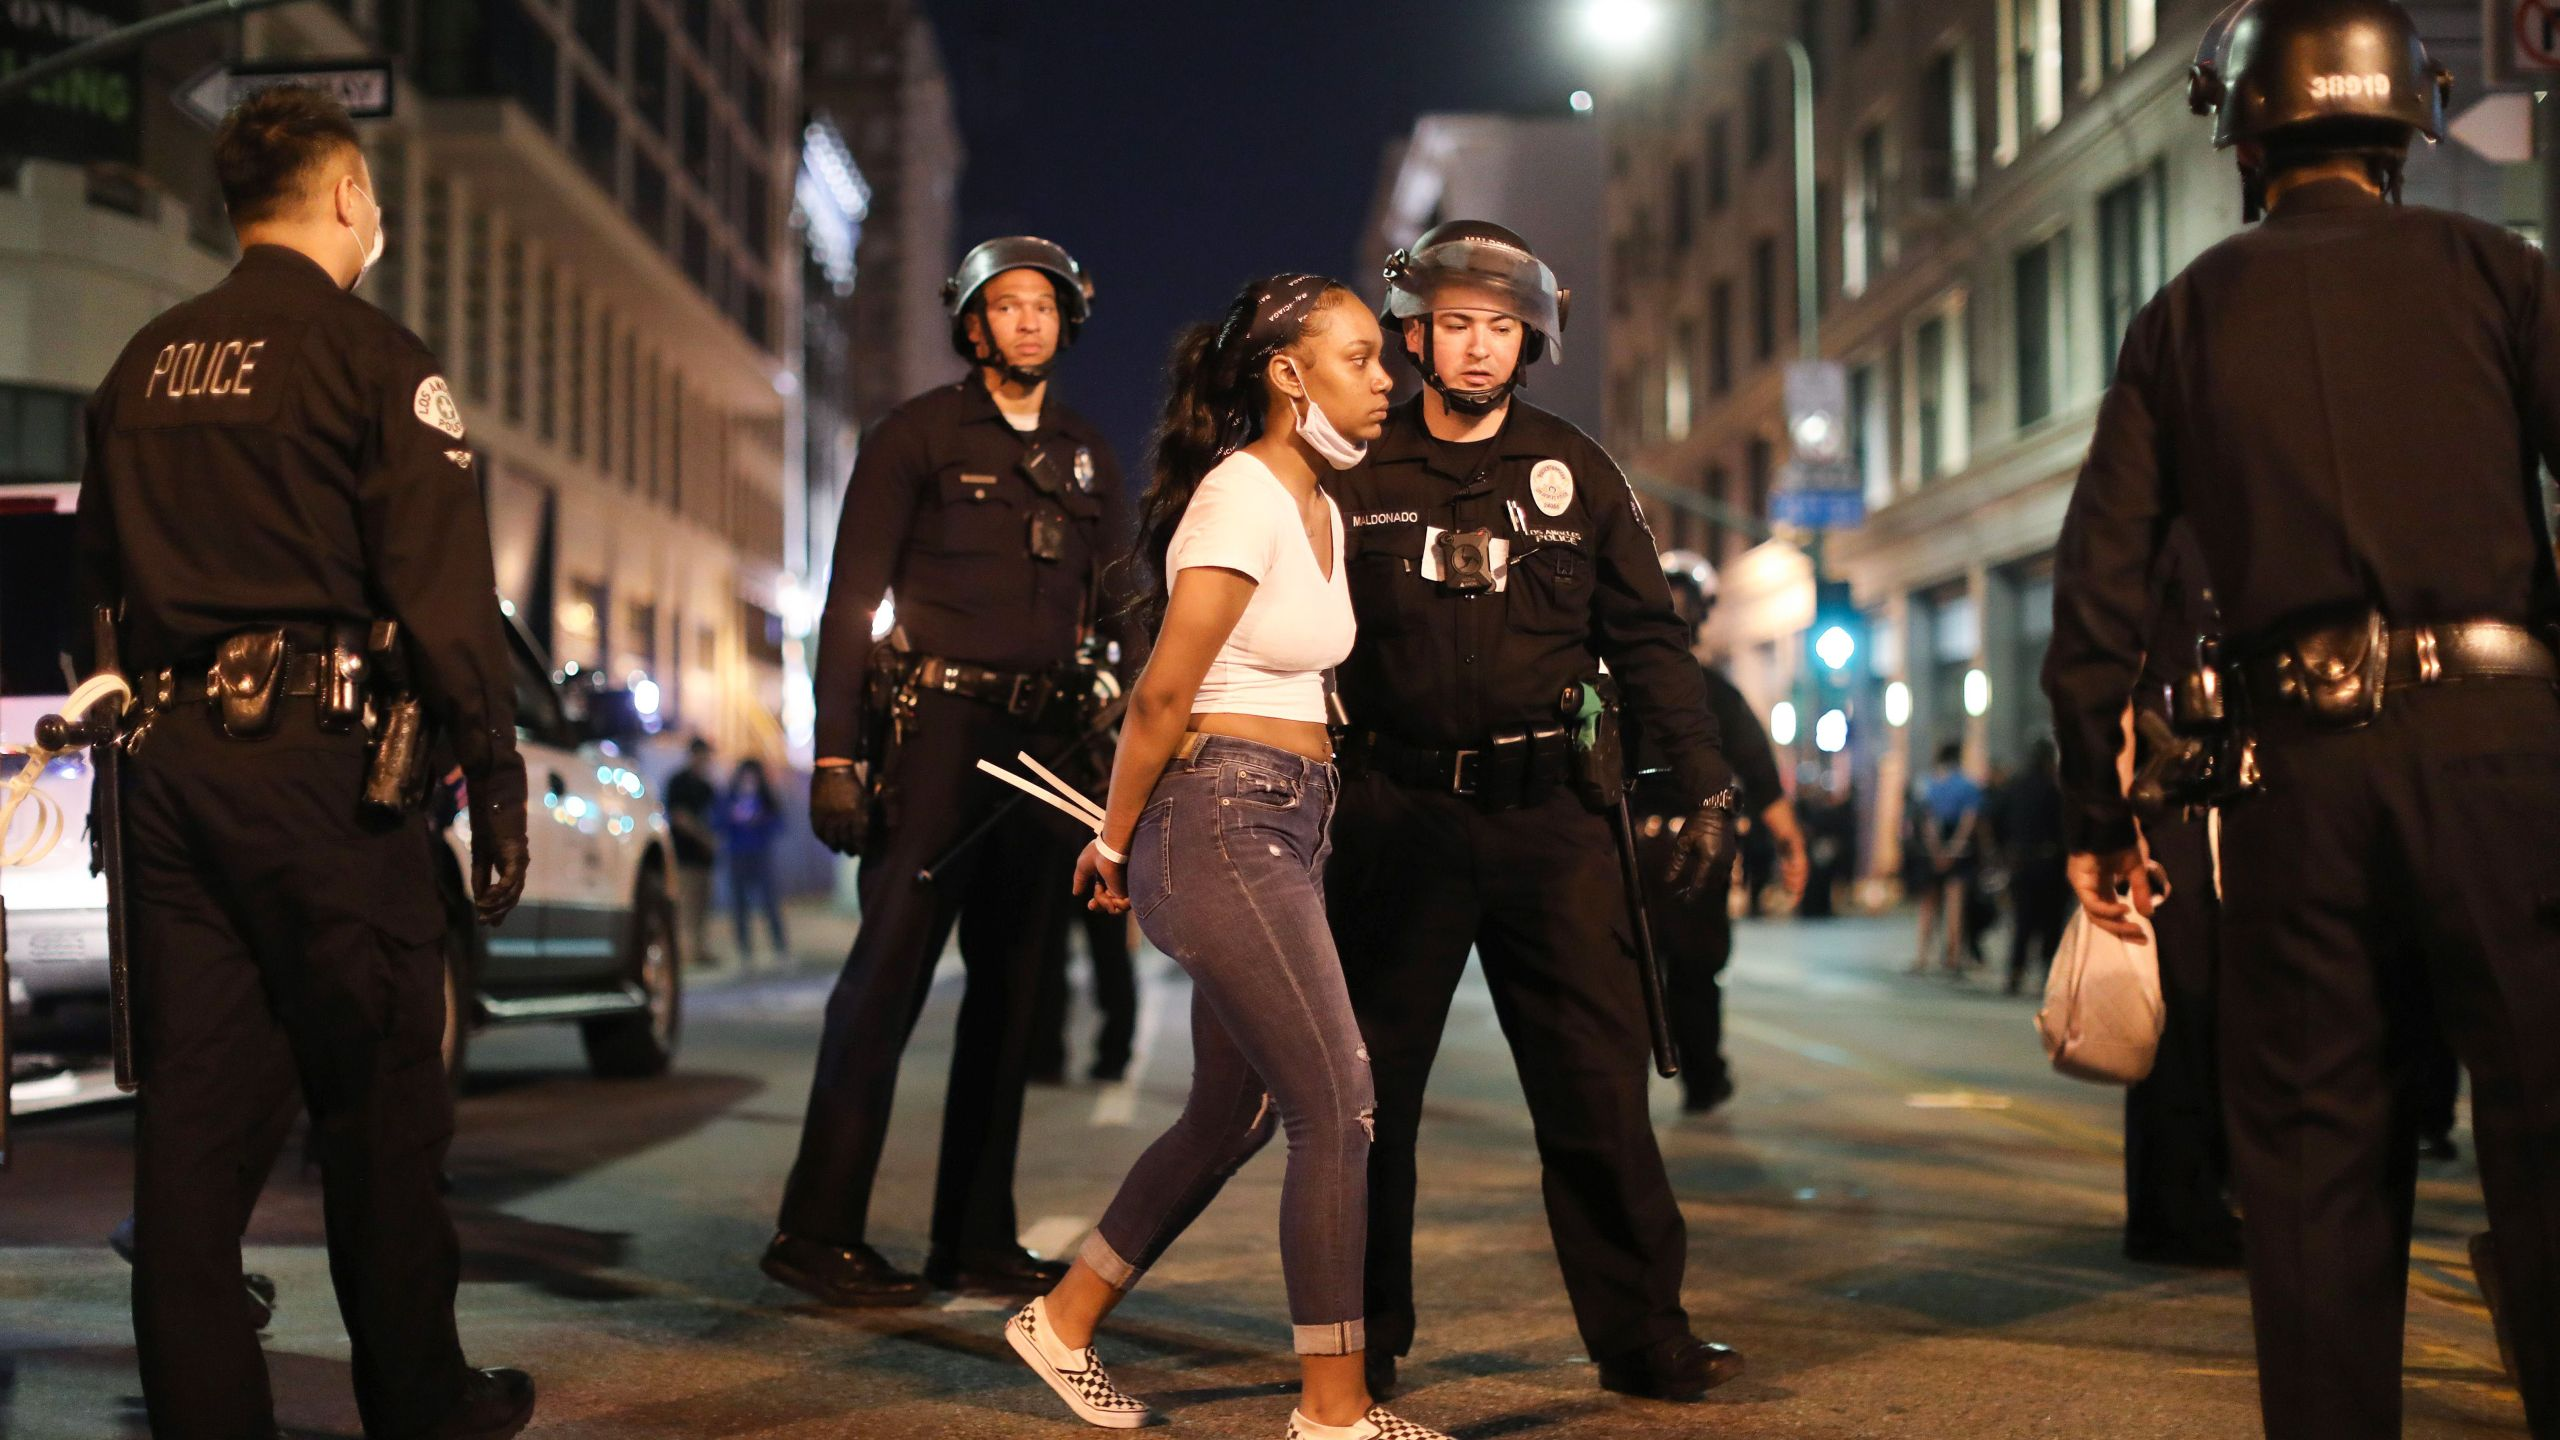 A woman is arrested after curfew went into effect during mostly peaceful demonstrations over George Floyd's death in downtown Los Angeles on June 2, 2020. (Mario Tama/Getty Images)